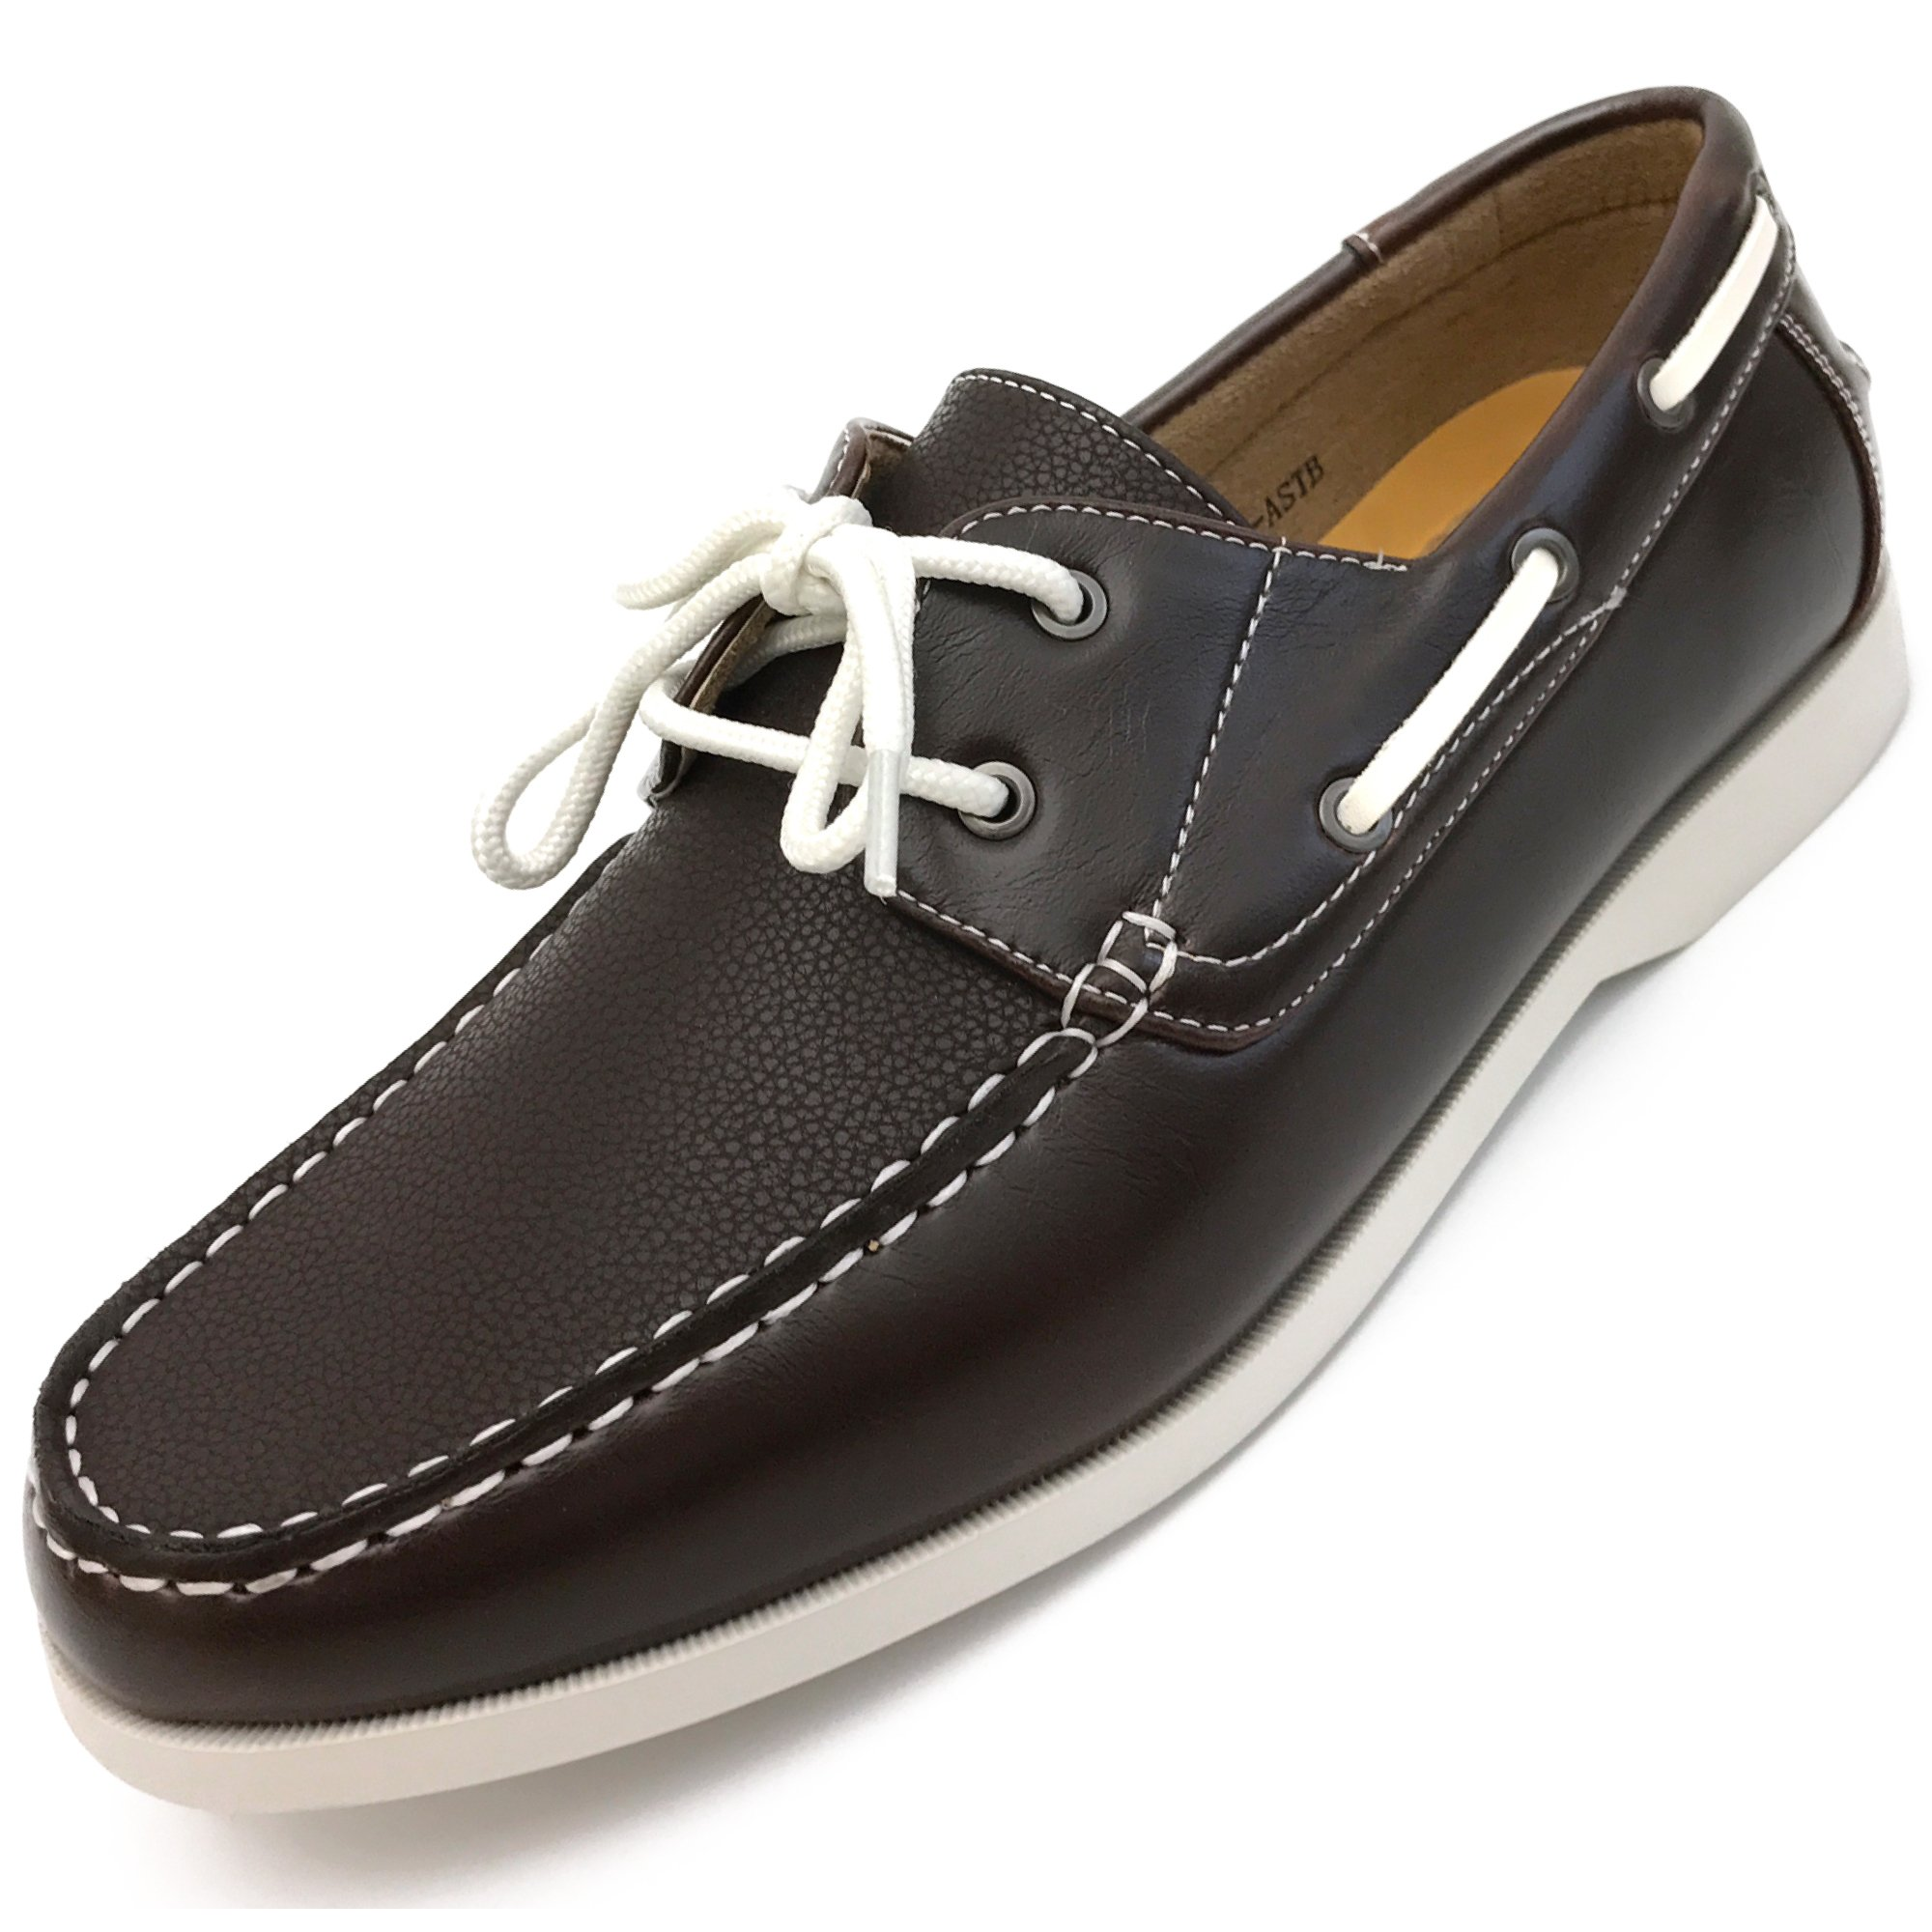 Easy Strider Men's Boat Shoes – Coffee - Size 7.5